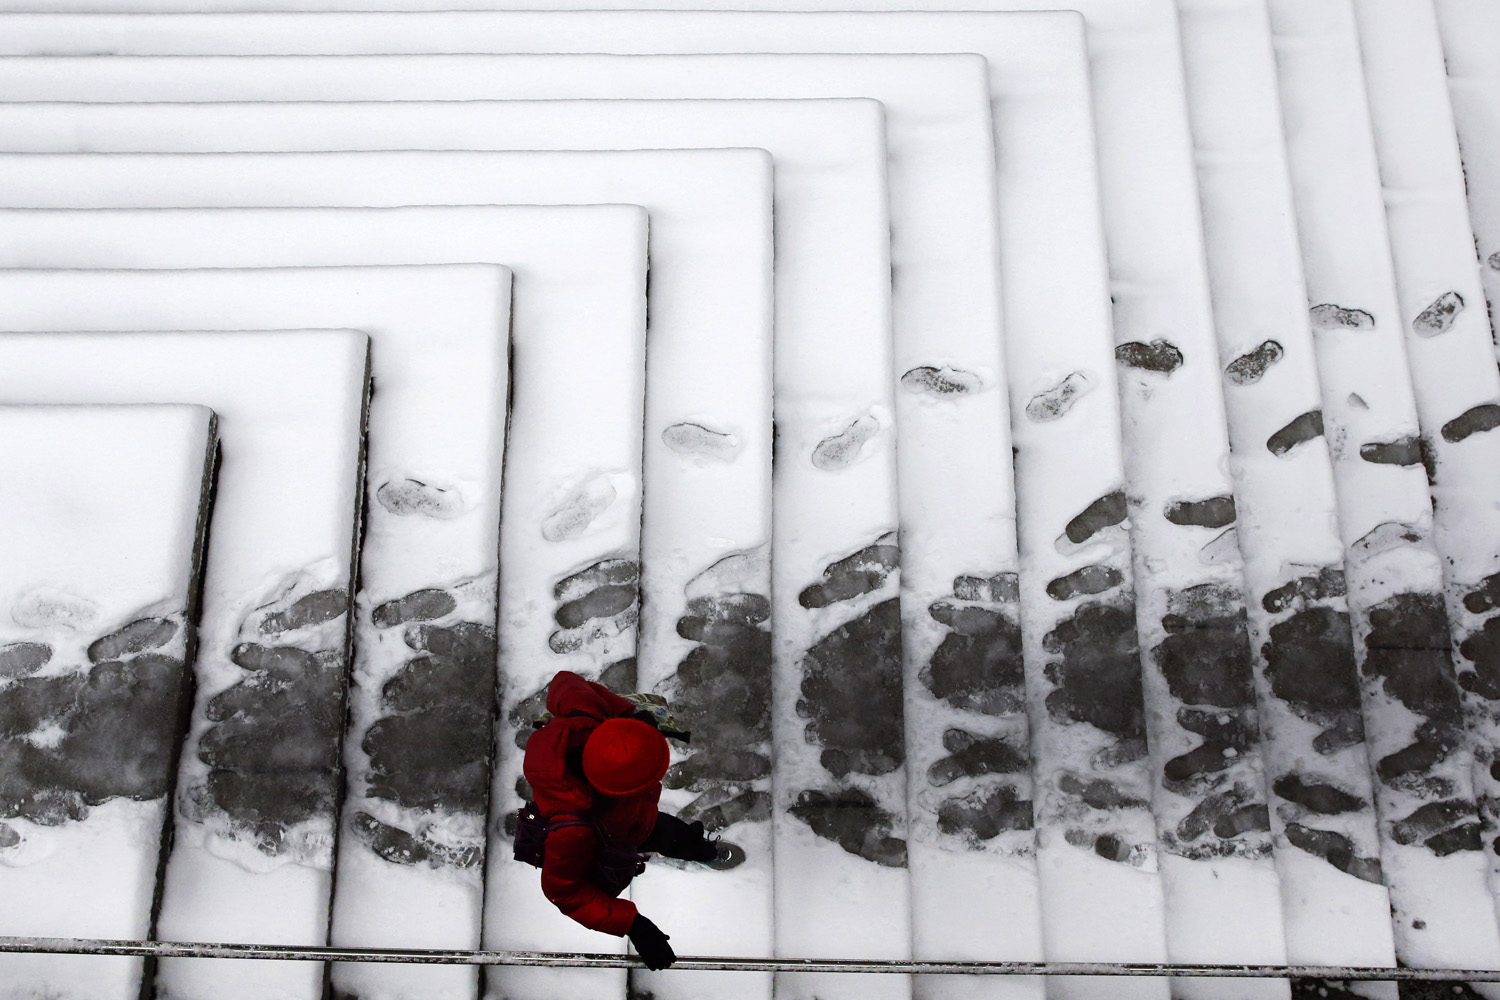 Mar. 17, 2014. A woman makes her way down snow-covered steps outside an office building in Baltimore. Winter-weary commuters faced another treacherous trip Monday in parts of the Mid-Atlantic as snow and frigid weather blew in just days before the start of spring.